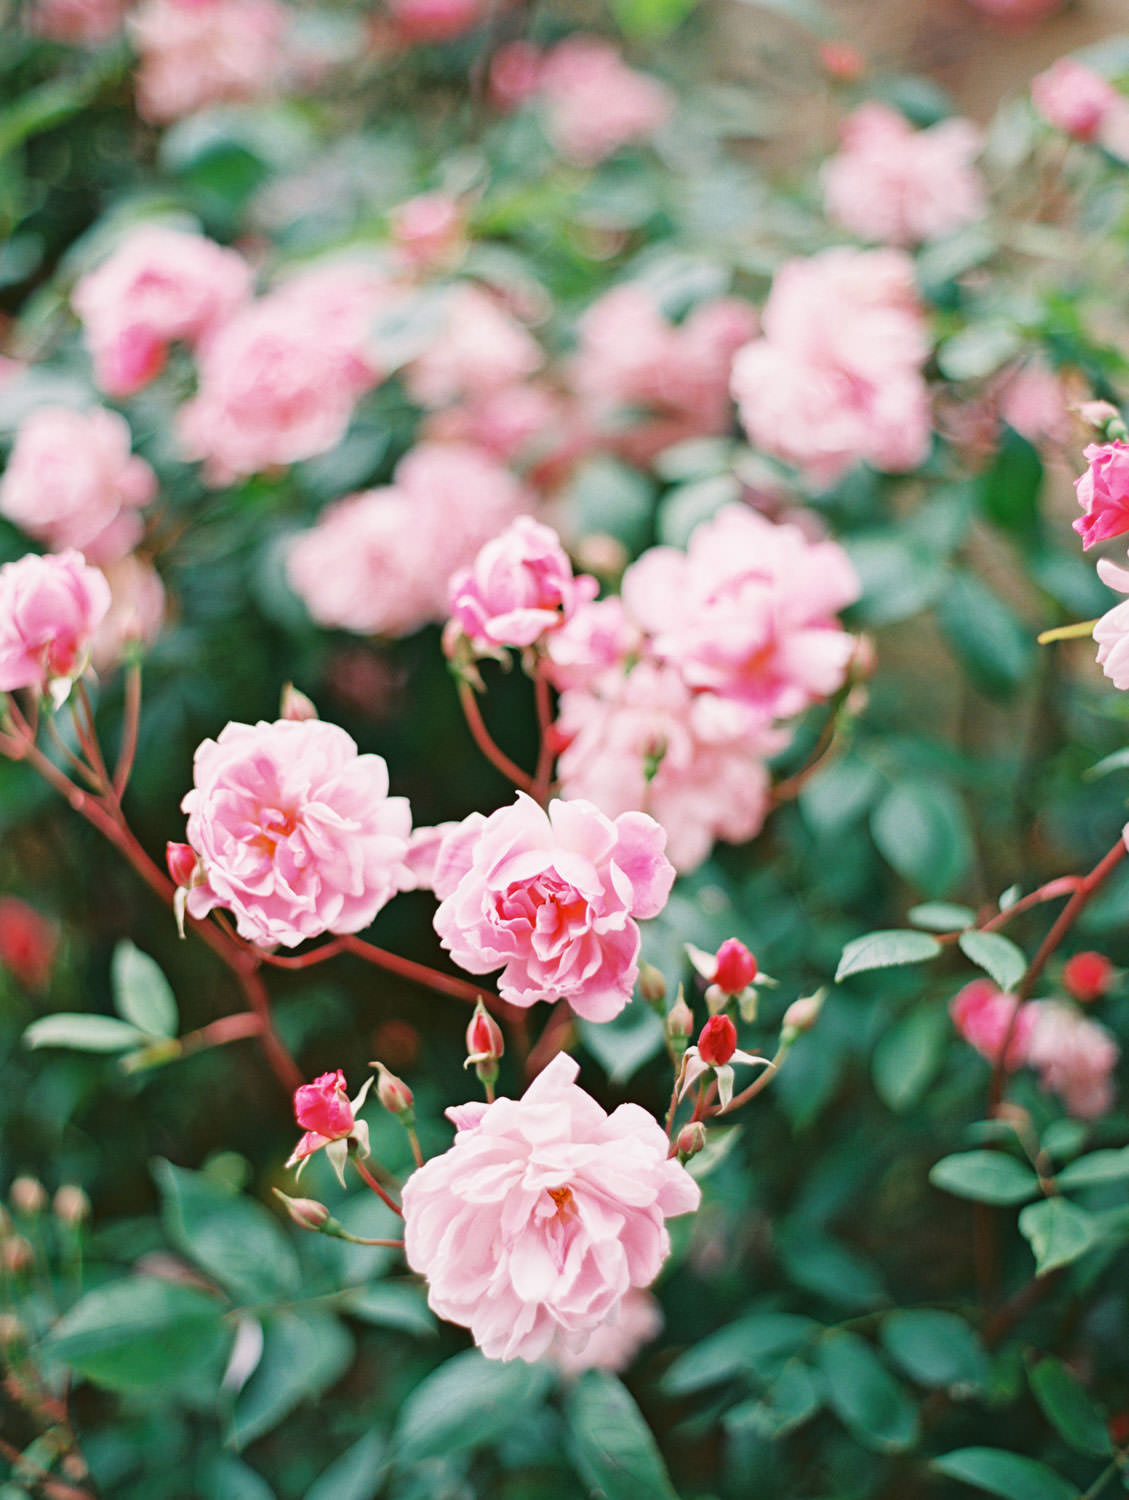 Stow-on-the-Wold pink rose bush in the Cotswolds. Flutter Magazine Retreat in the Cotswolds, England. Photo by Cavin Elizabeth Photography on film